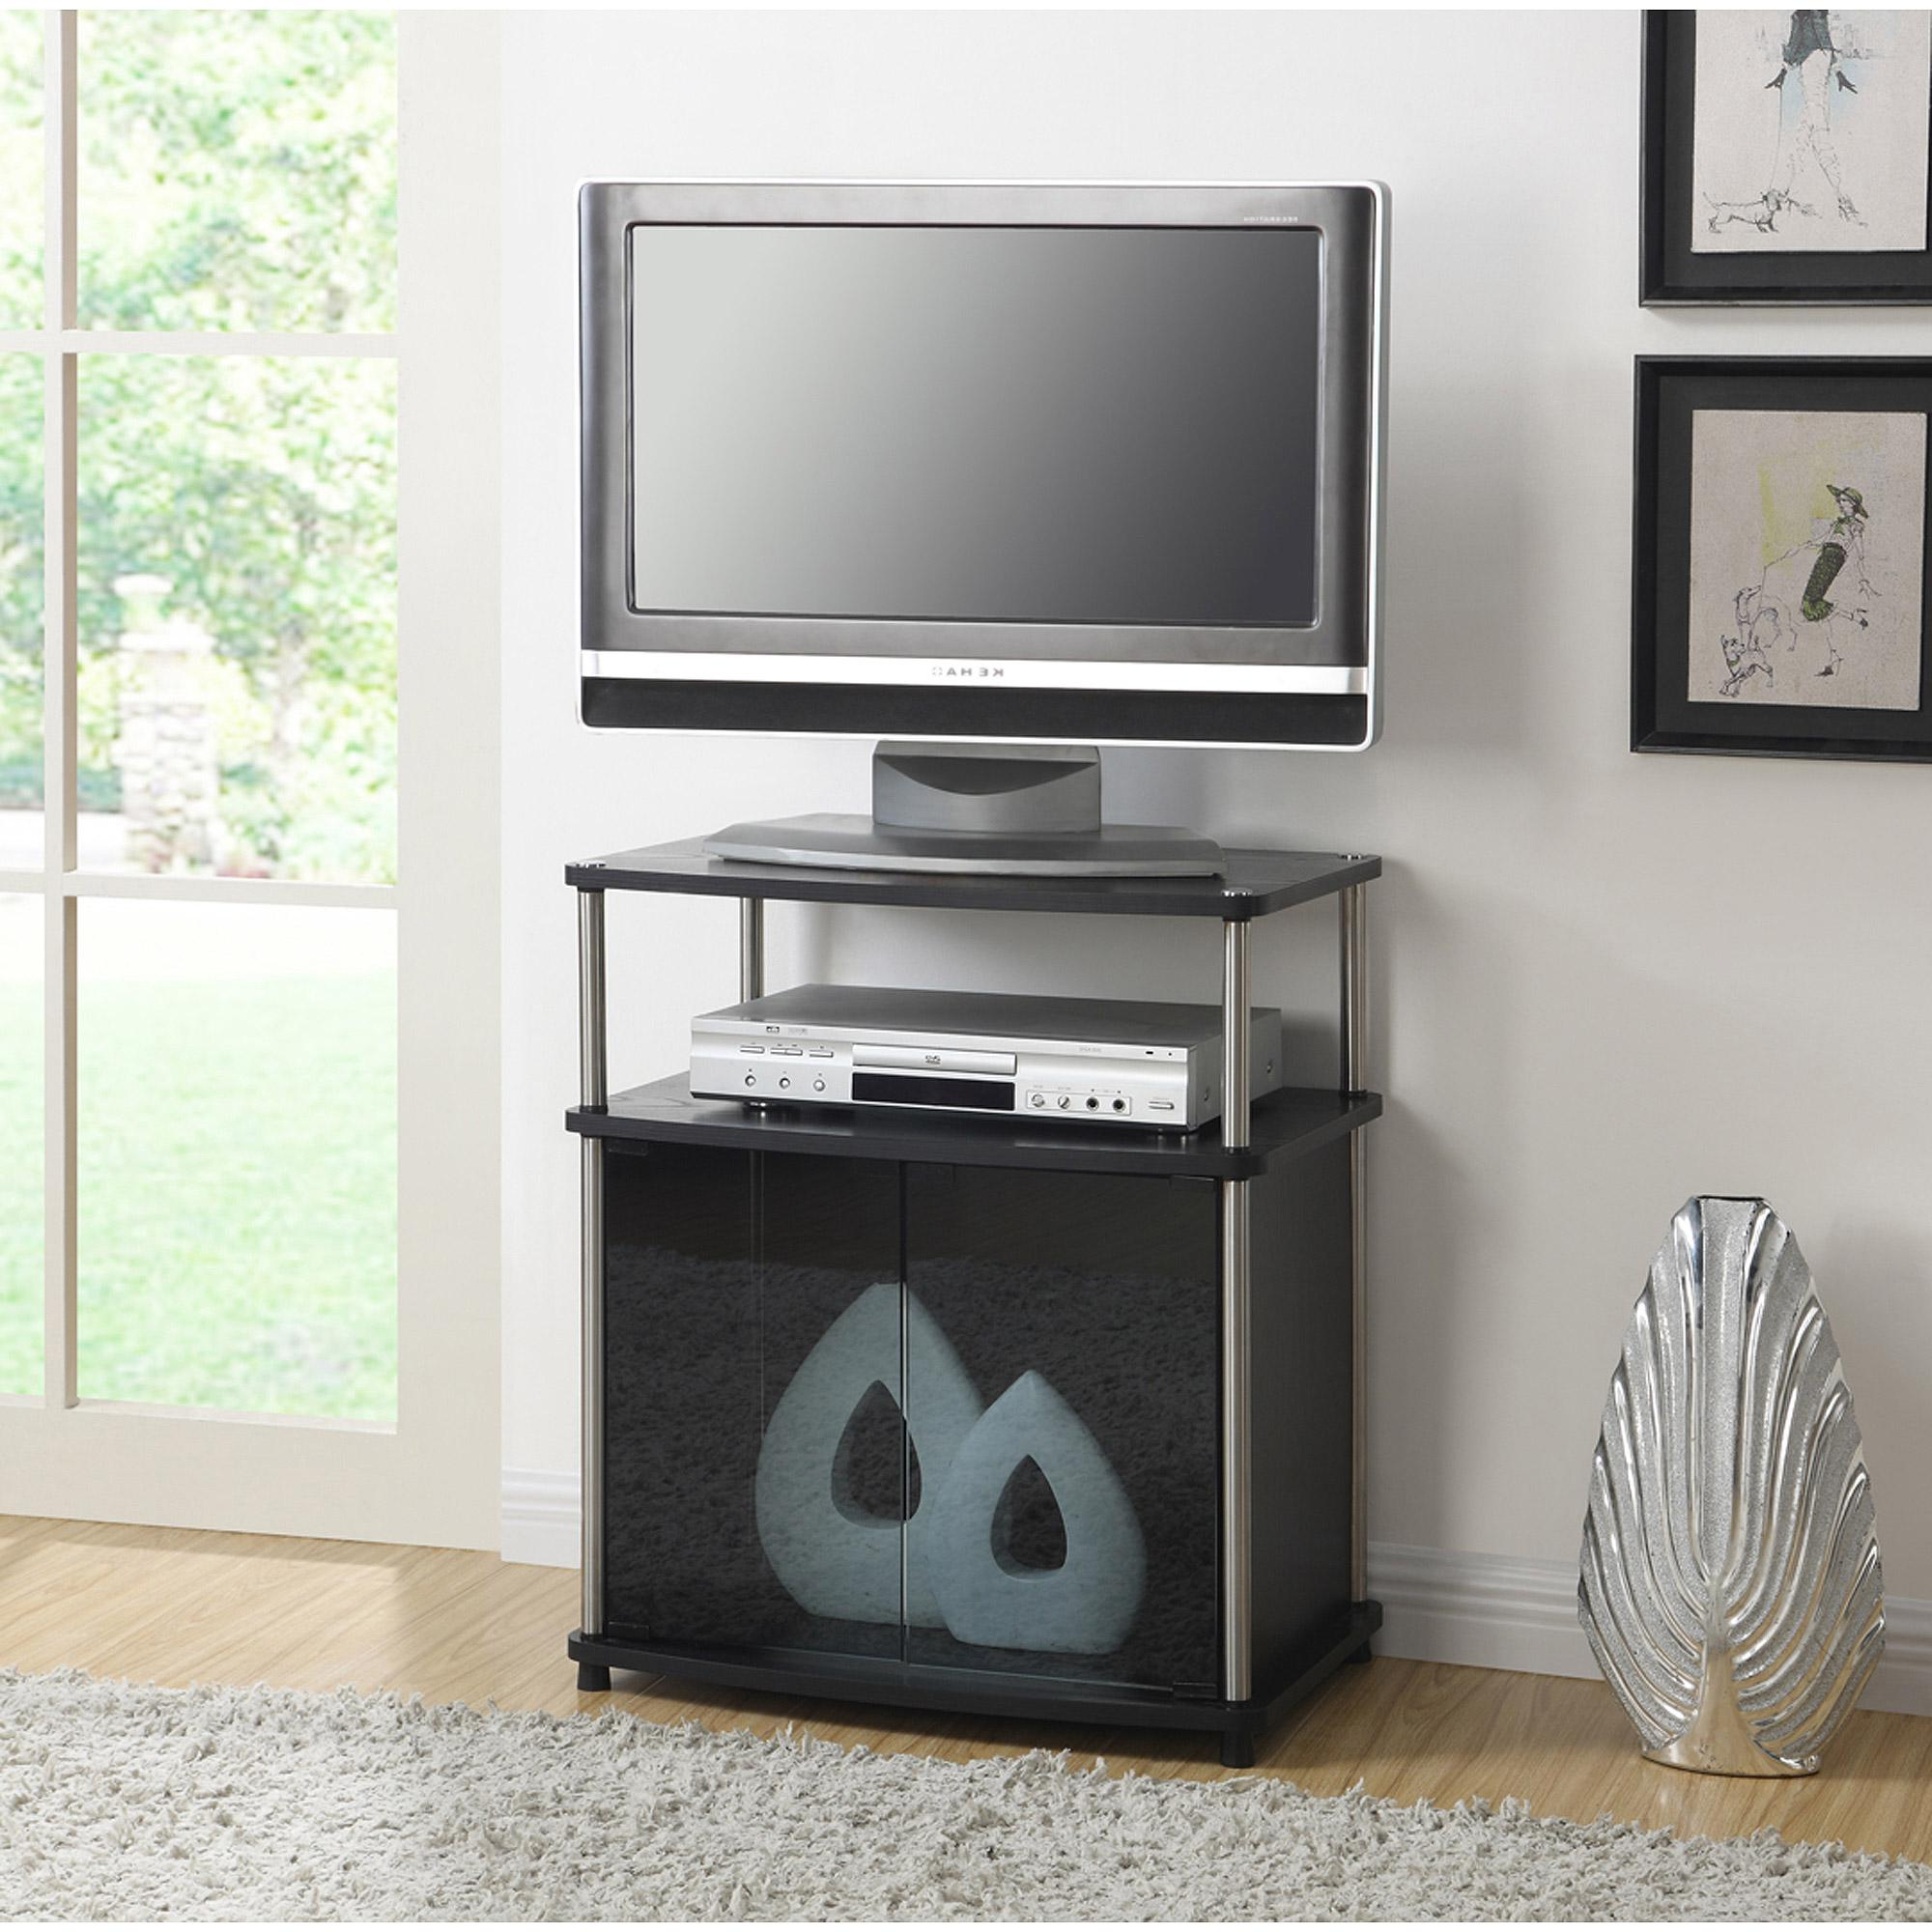 Black Tv Stand With Glass Doors For Well Known Modern Tall Black Tv Stand With Glass Doors For Bedroom Of 16 Tall (View 17 of 20)